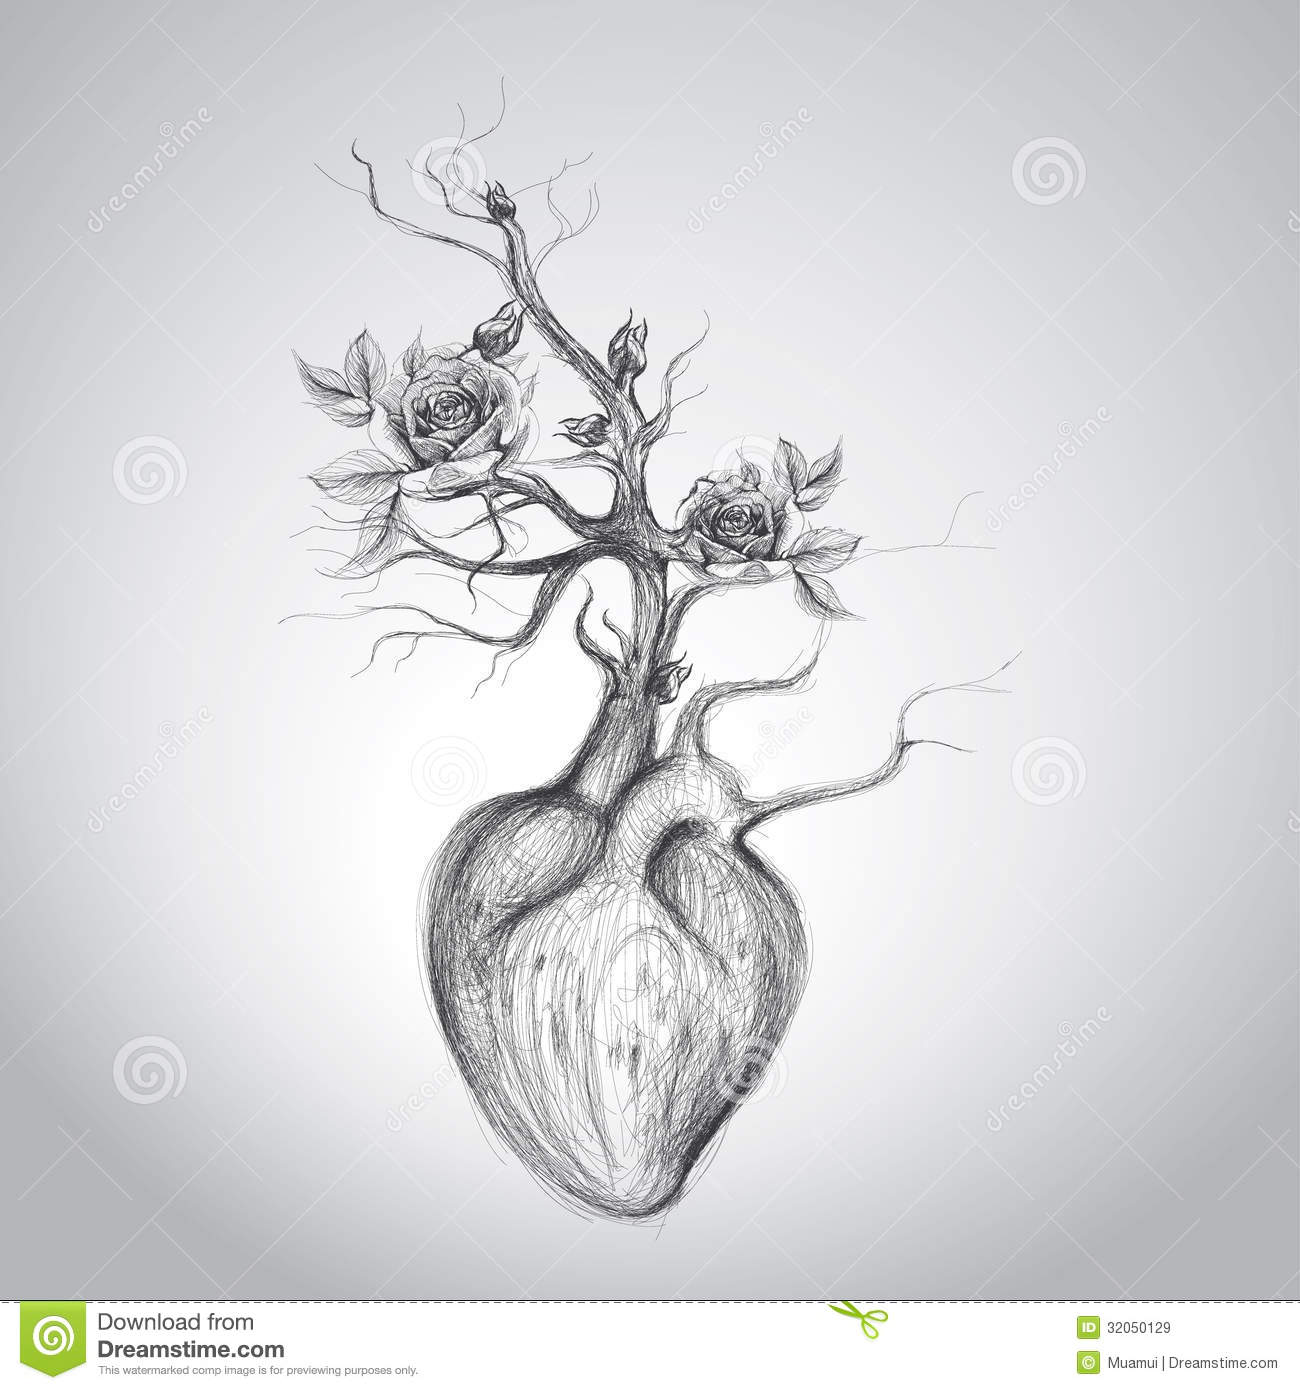 The Heart Is In Blossom Royalty Free Stock Images - Image ... | 1300 x 1390 jpeg 145kB